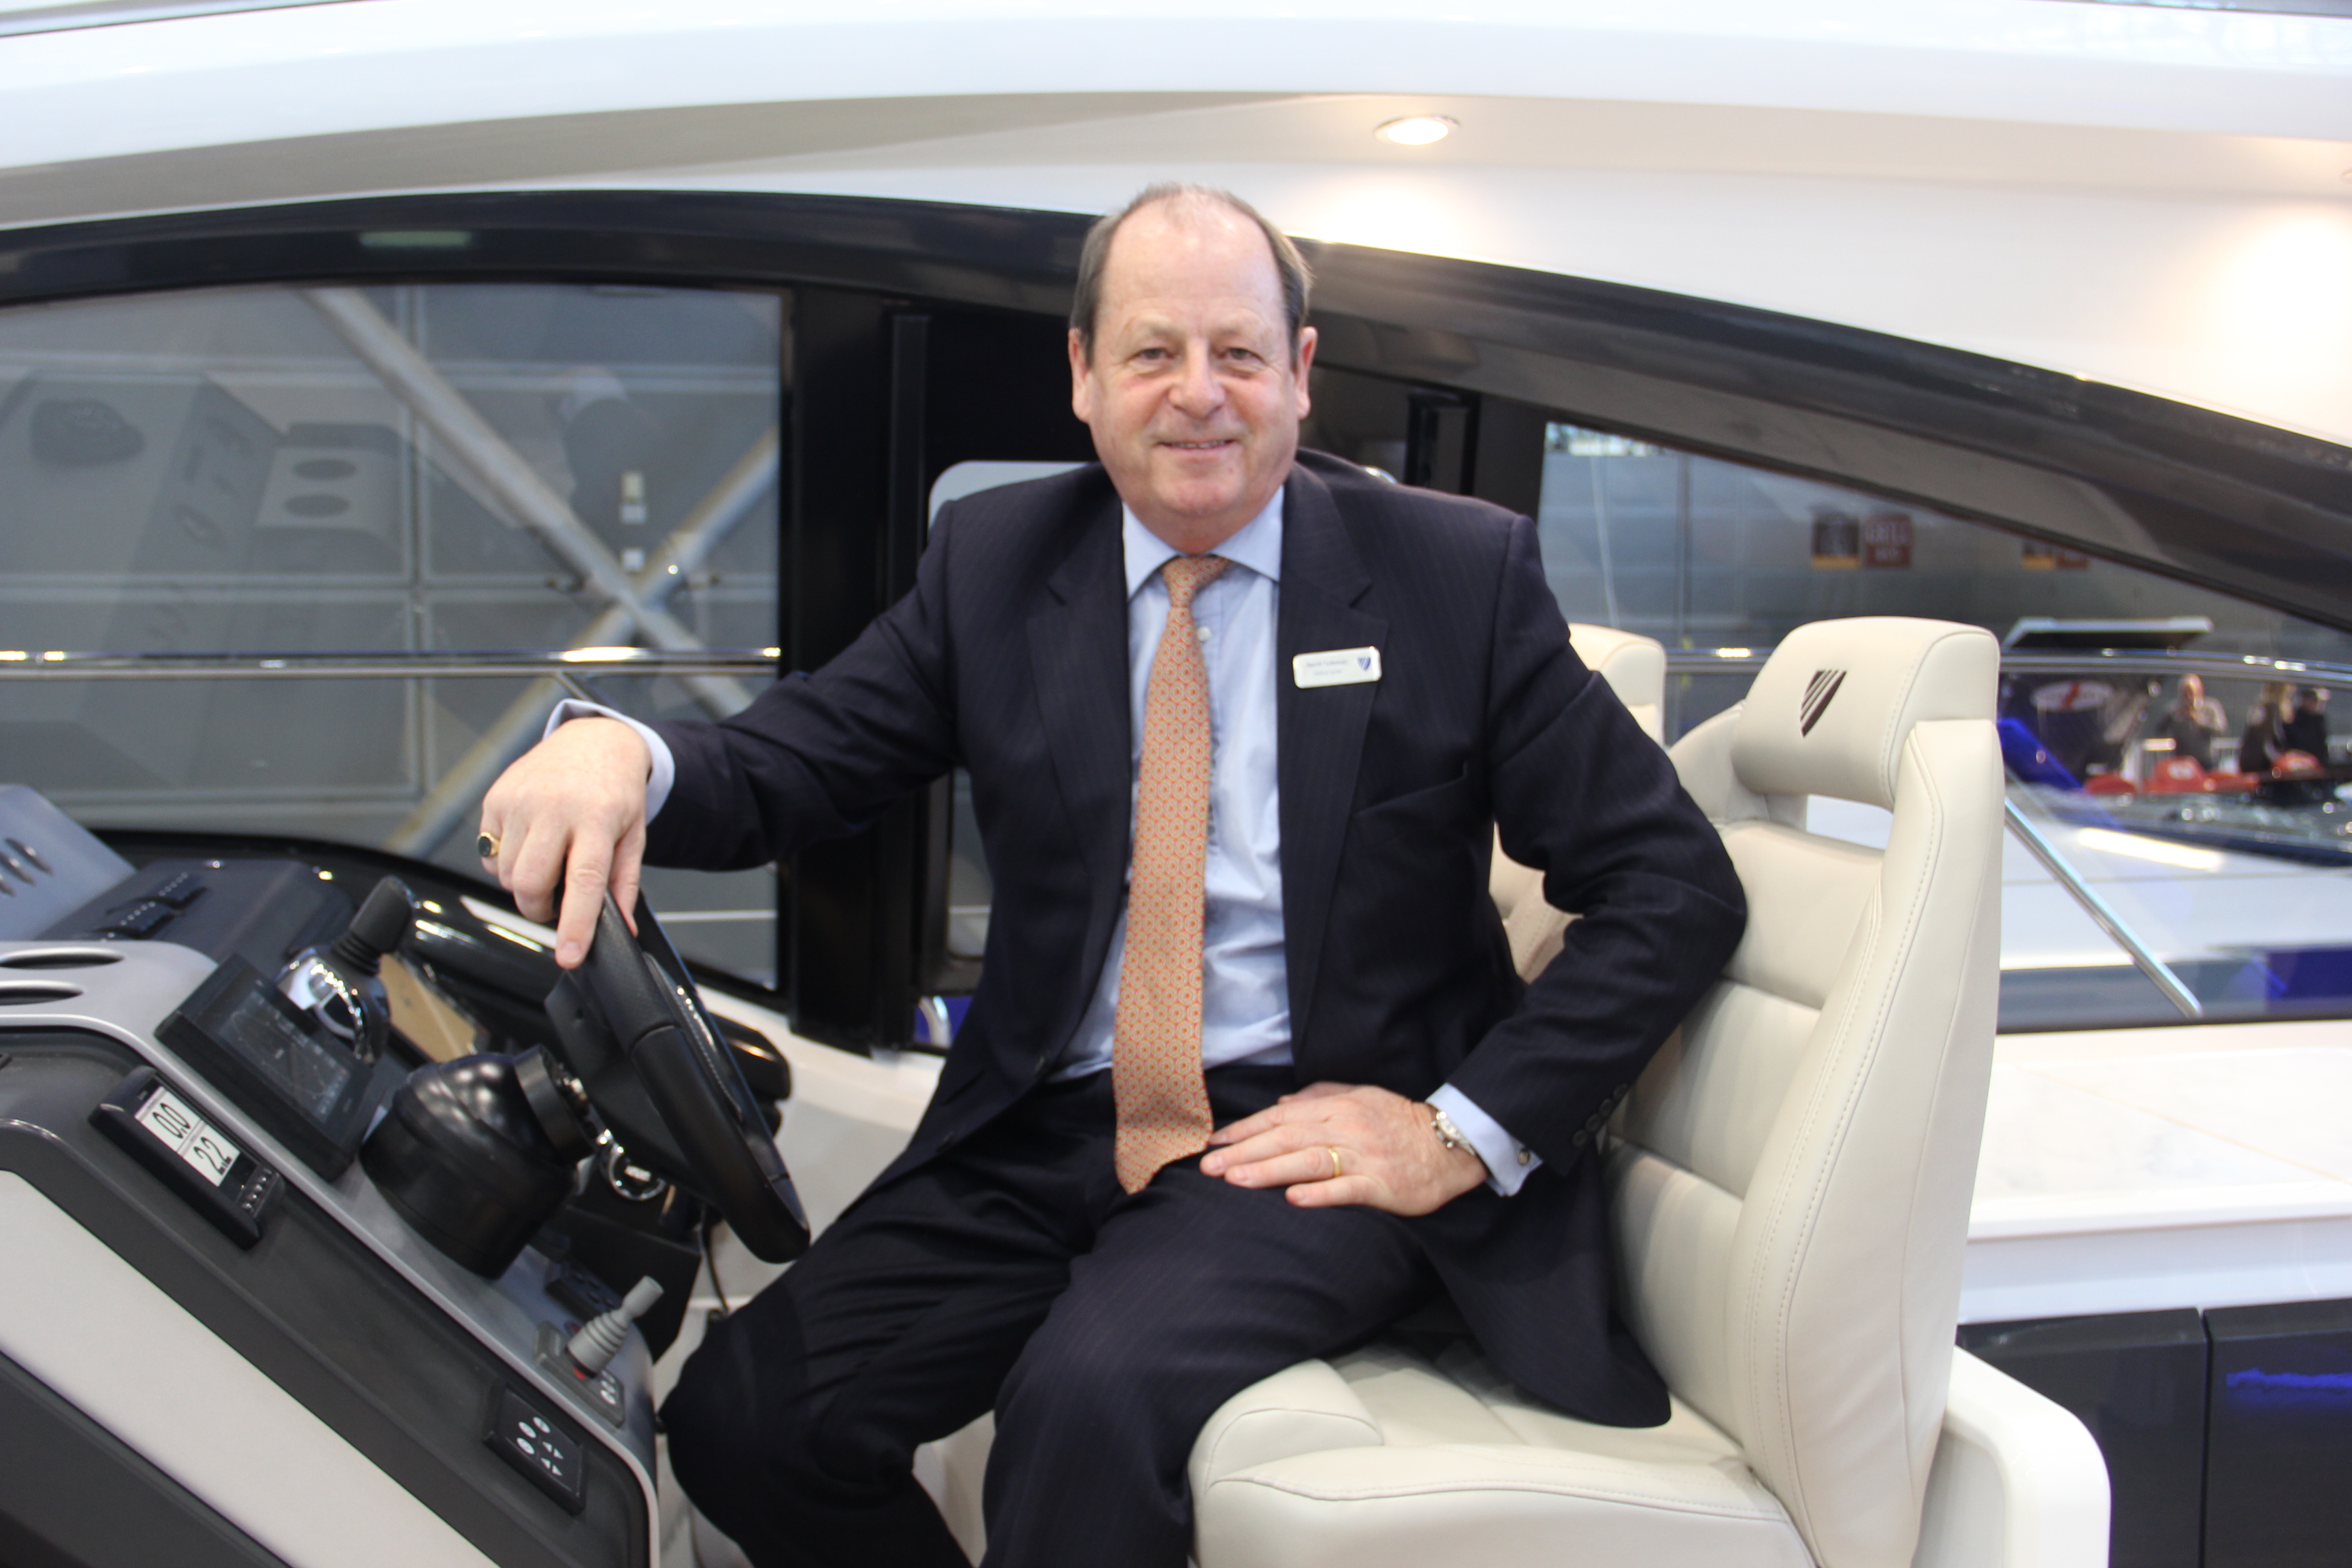 David Tydeman, Fairline's Executive Chairman, is primarily focused on production in 2019